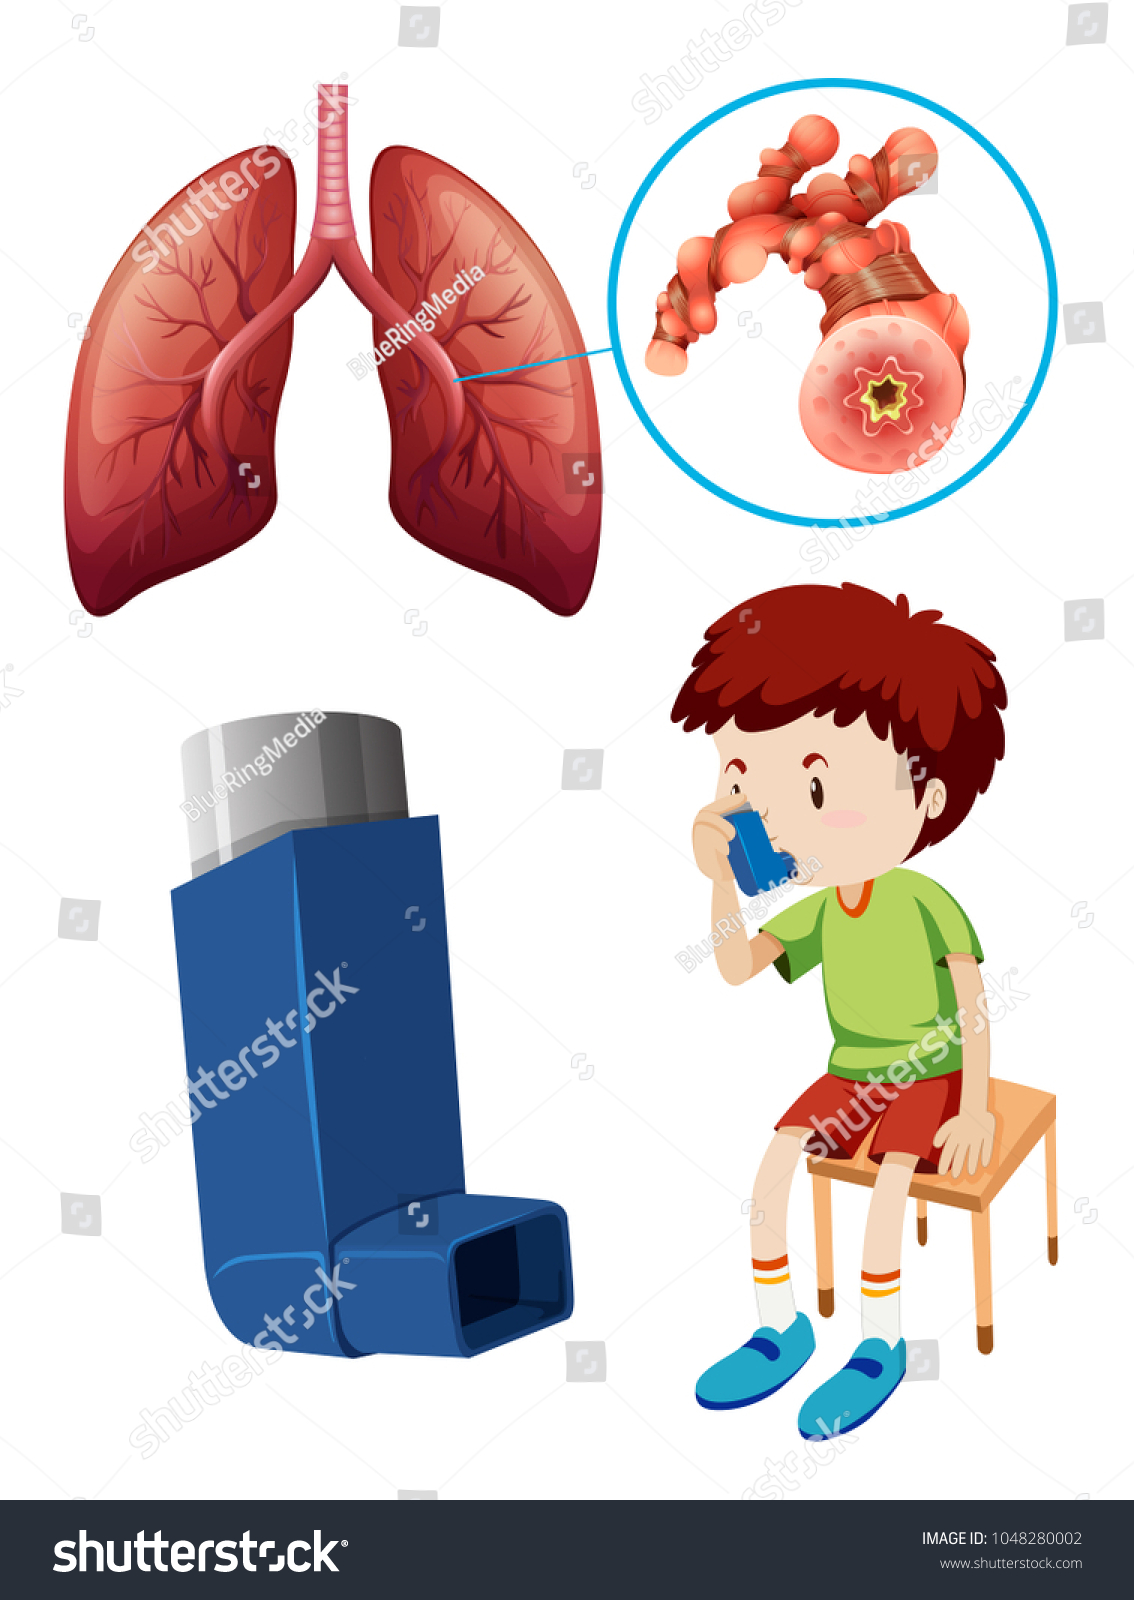 Kid Asthma Puffer Lung Anatomy Stock Vector HD (Royalty Free ...